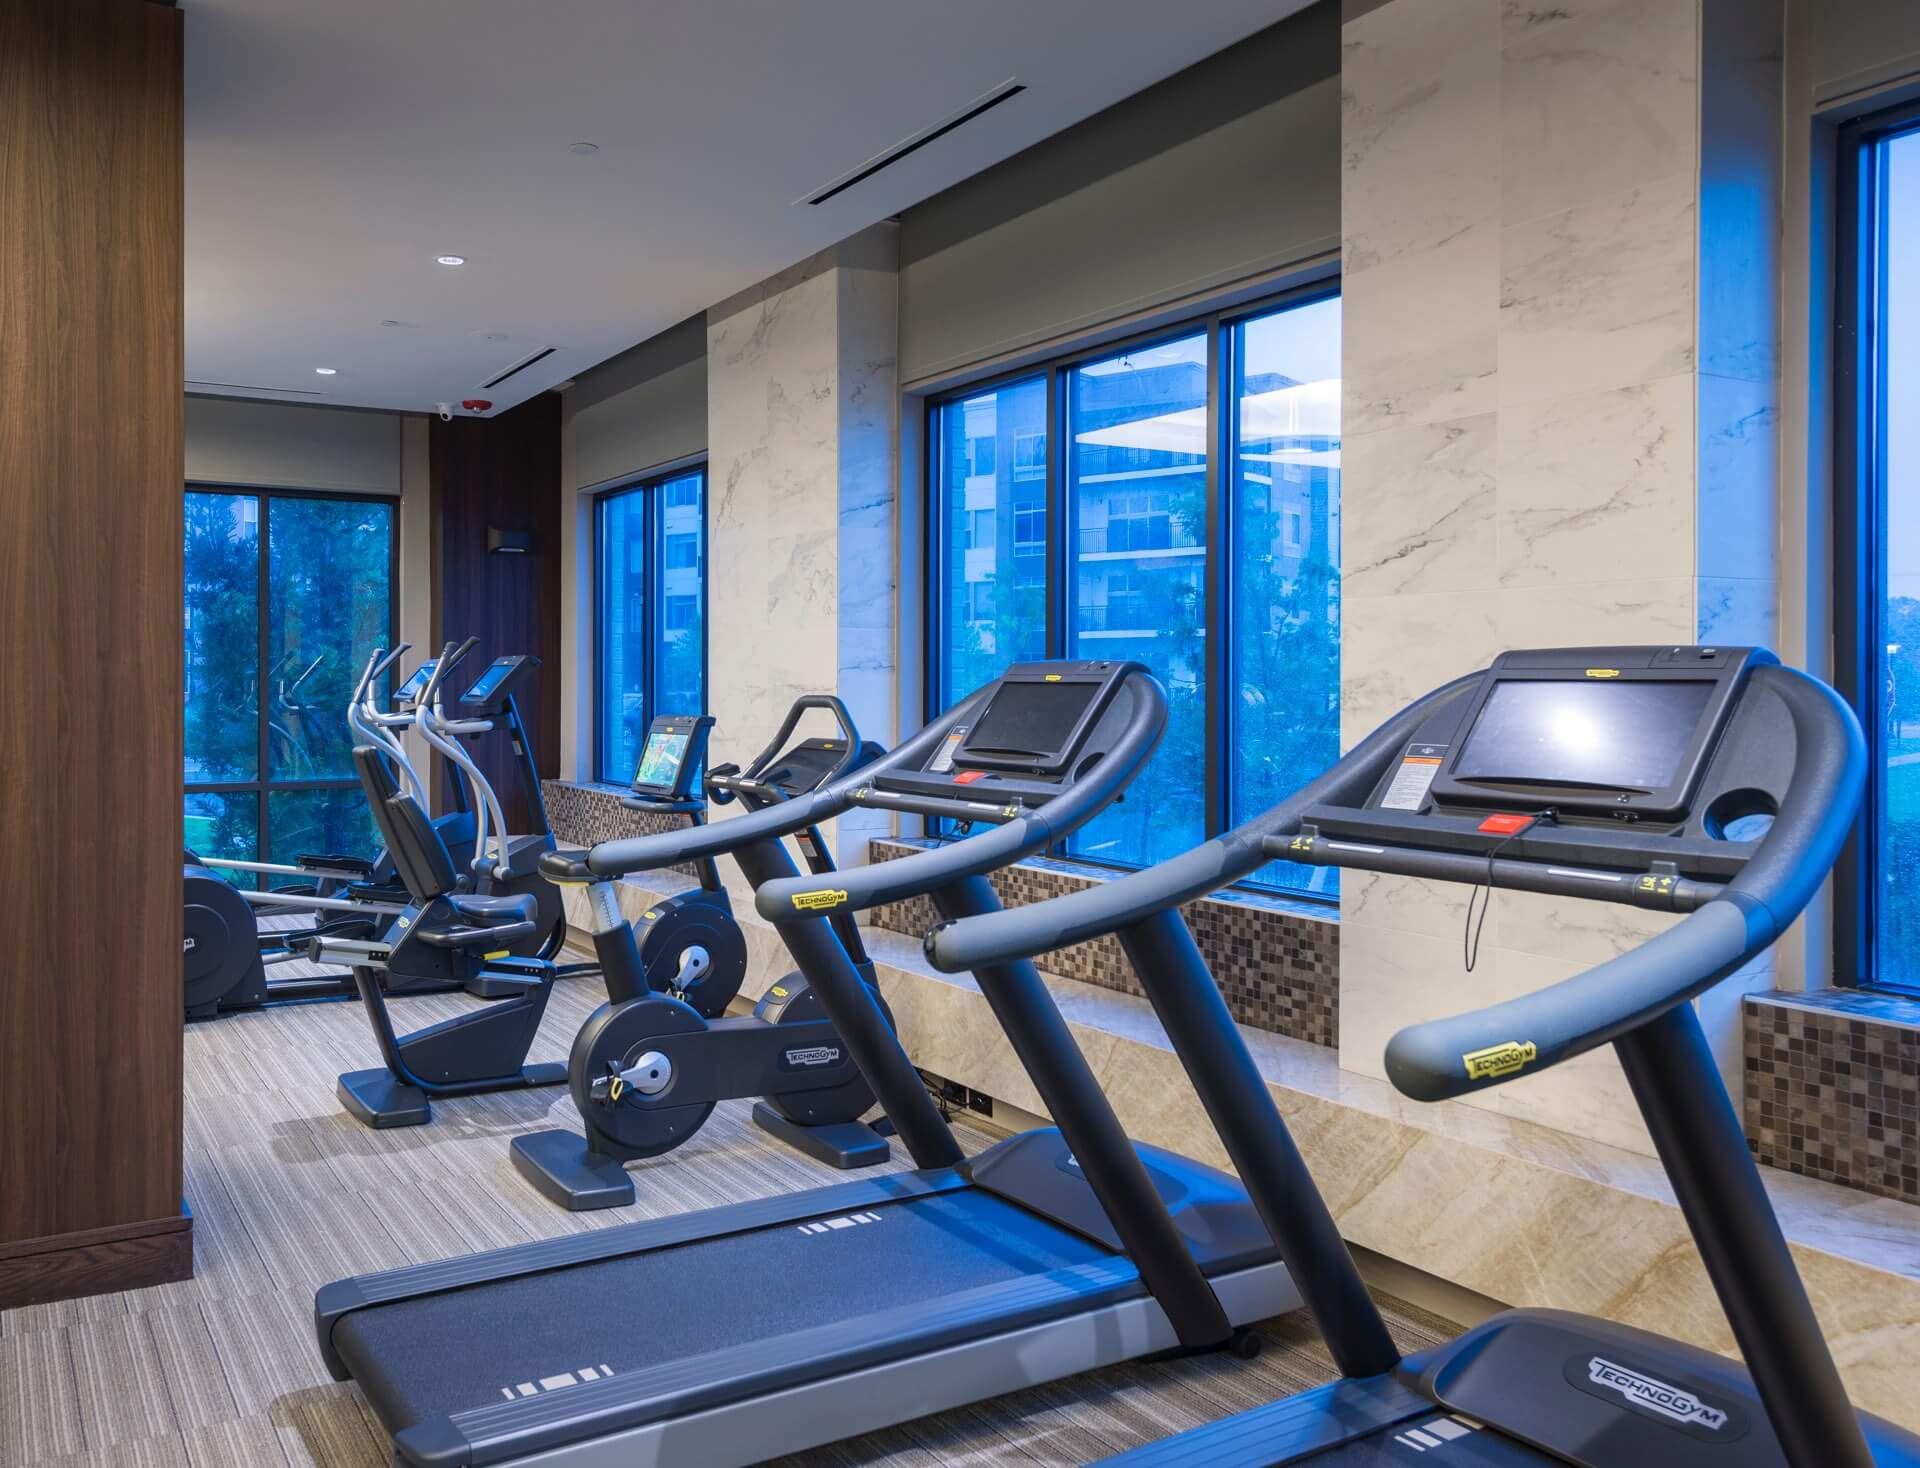 Fitness center with Peloton bikes & yoga room